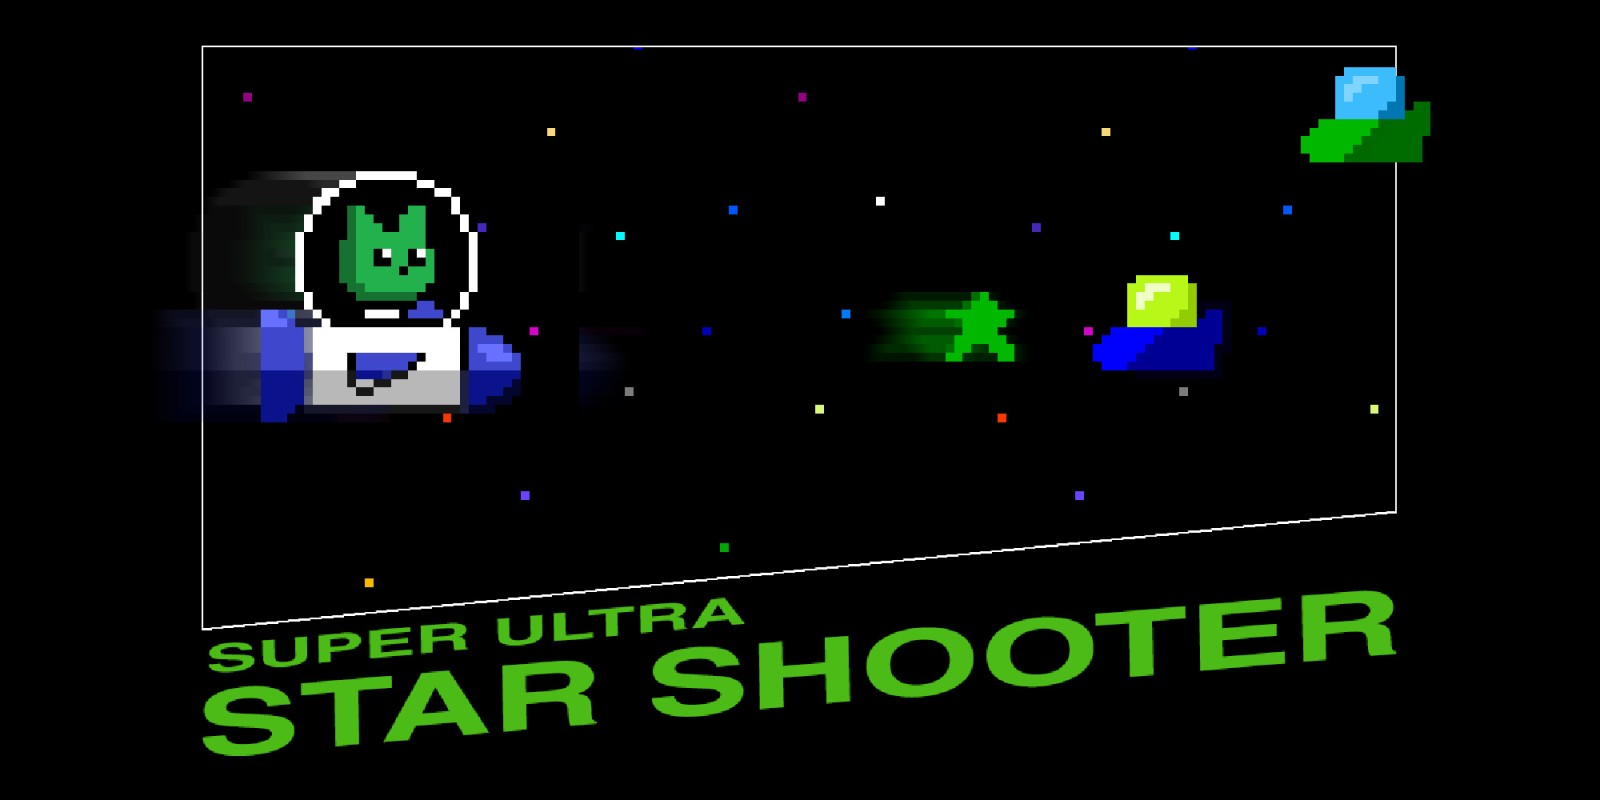 Super Ultra Star Shooter